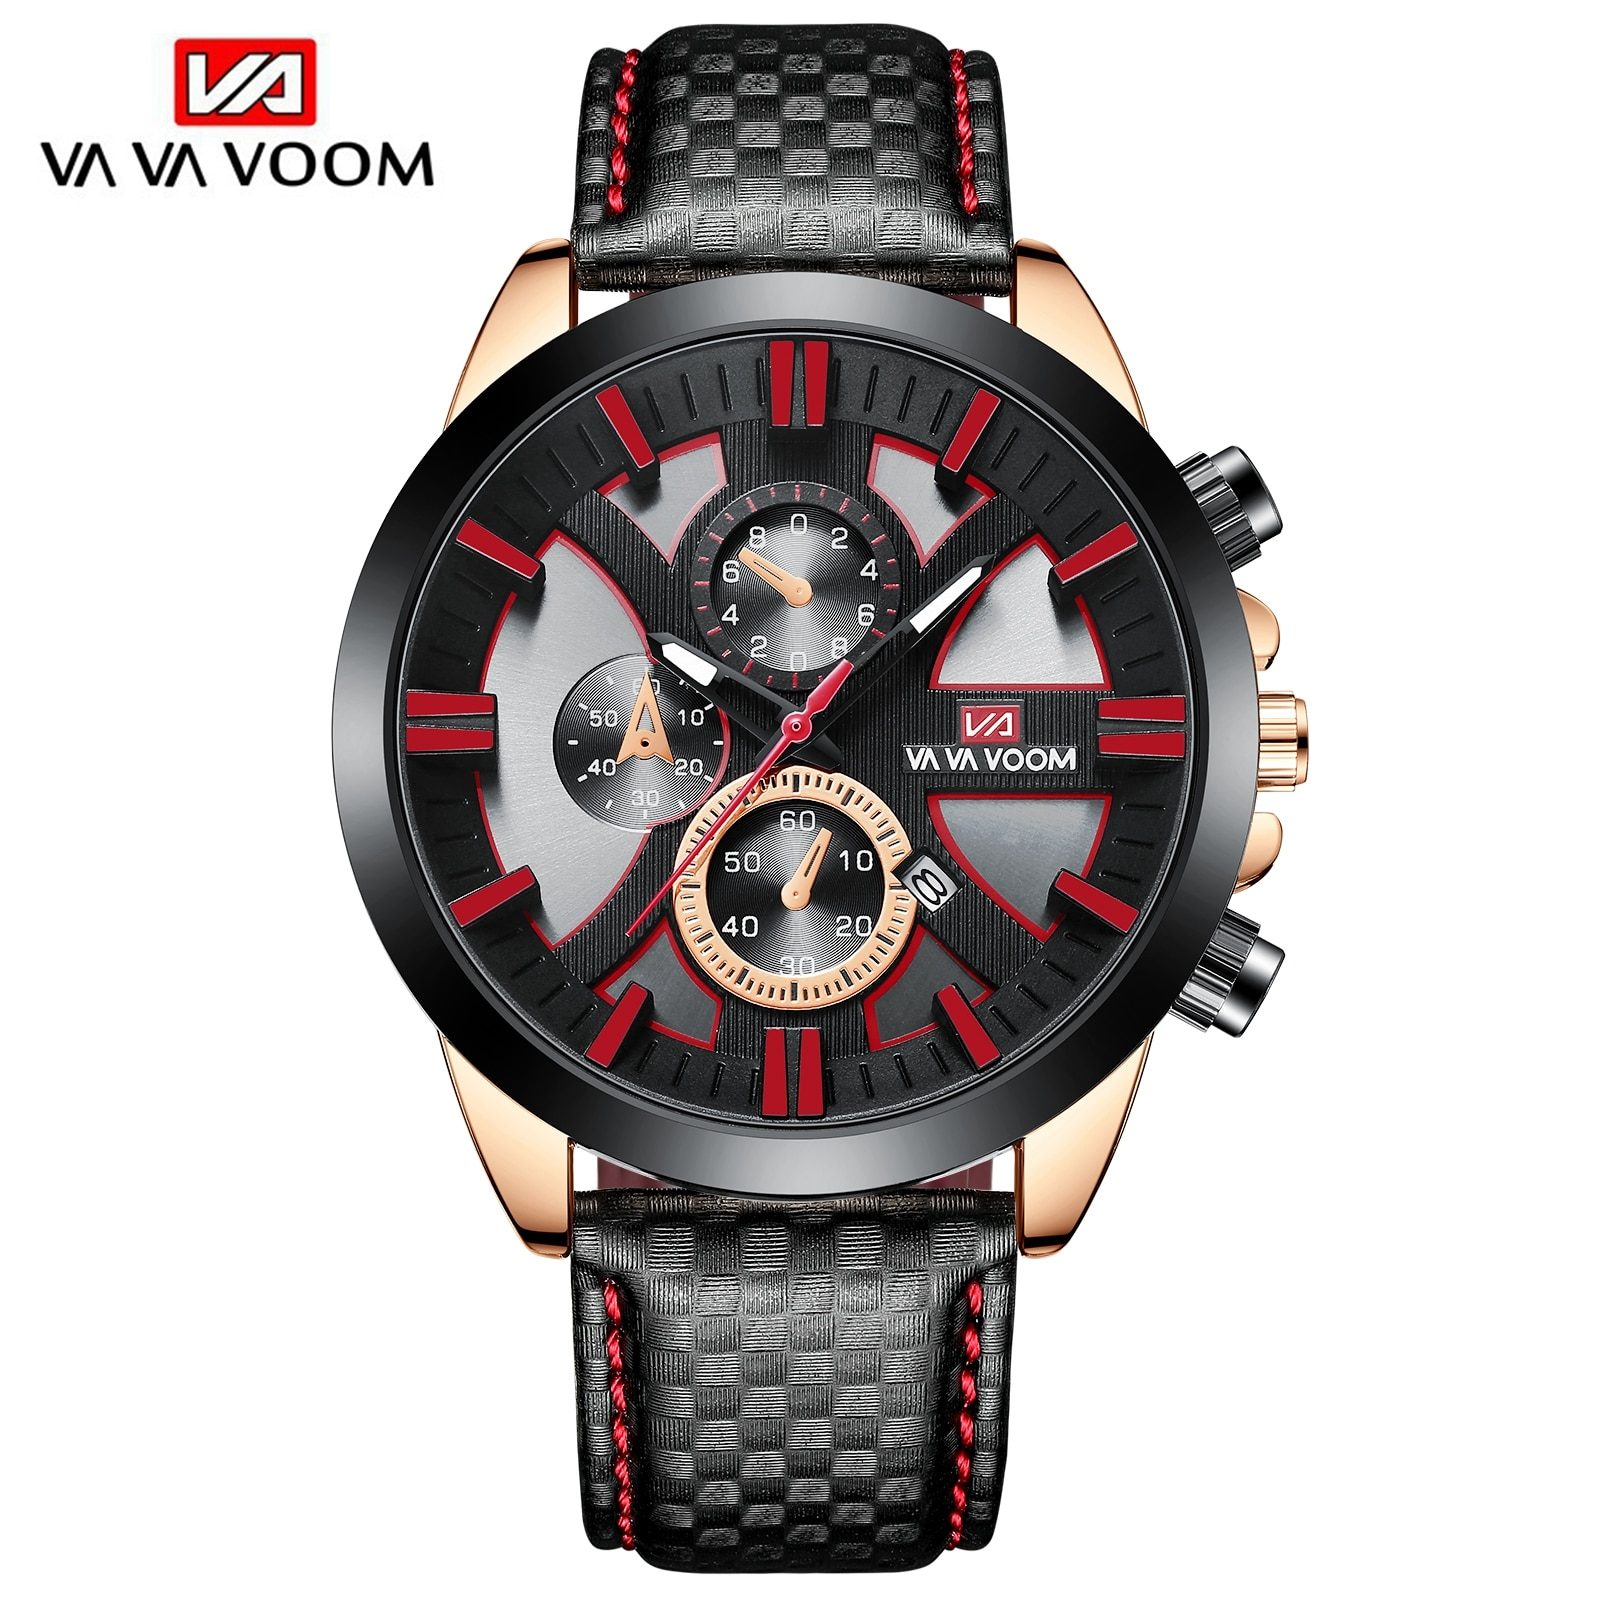 2021 New 45mm Dial Fashion Watches Top Brand Luxury Sports Waterproof Chronograph Military Genuine L